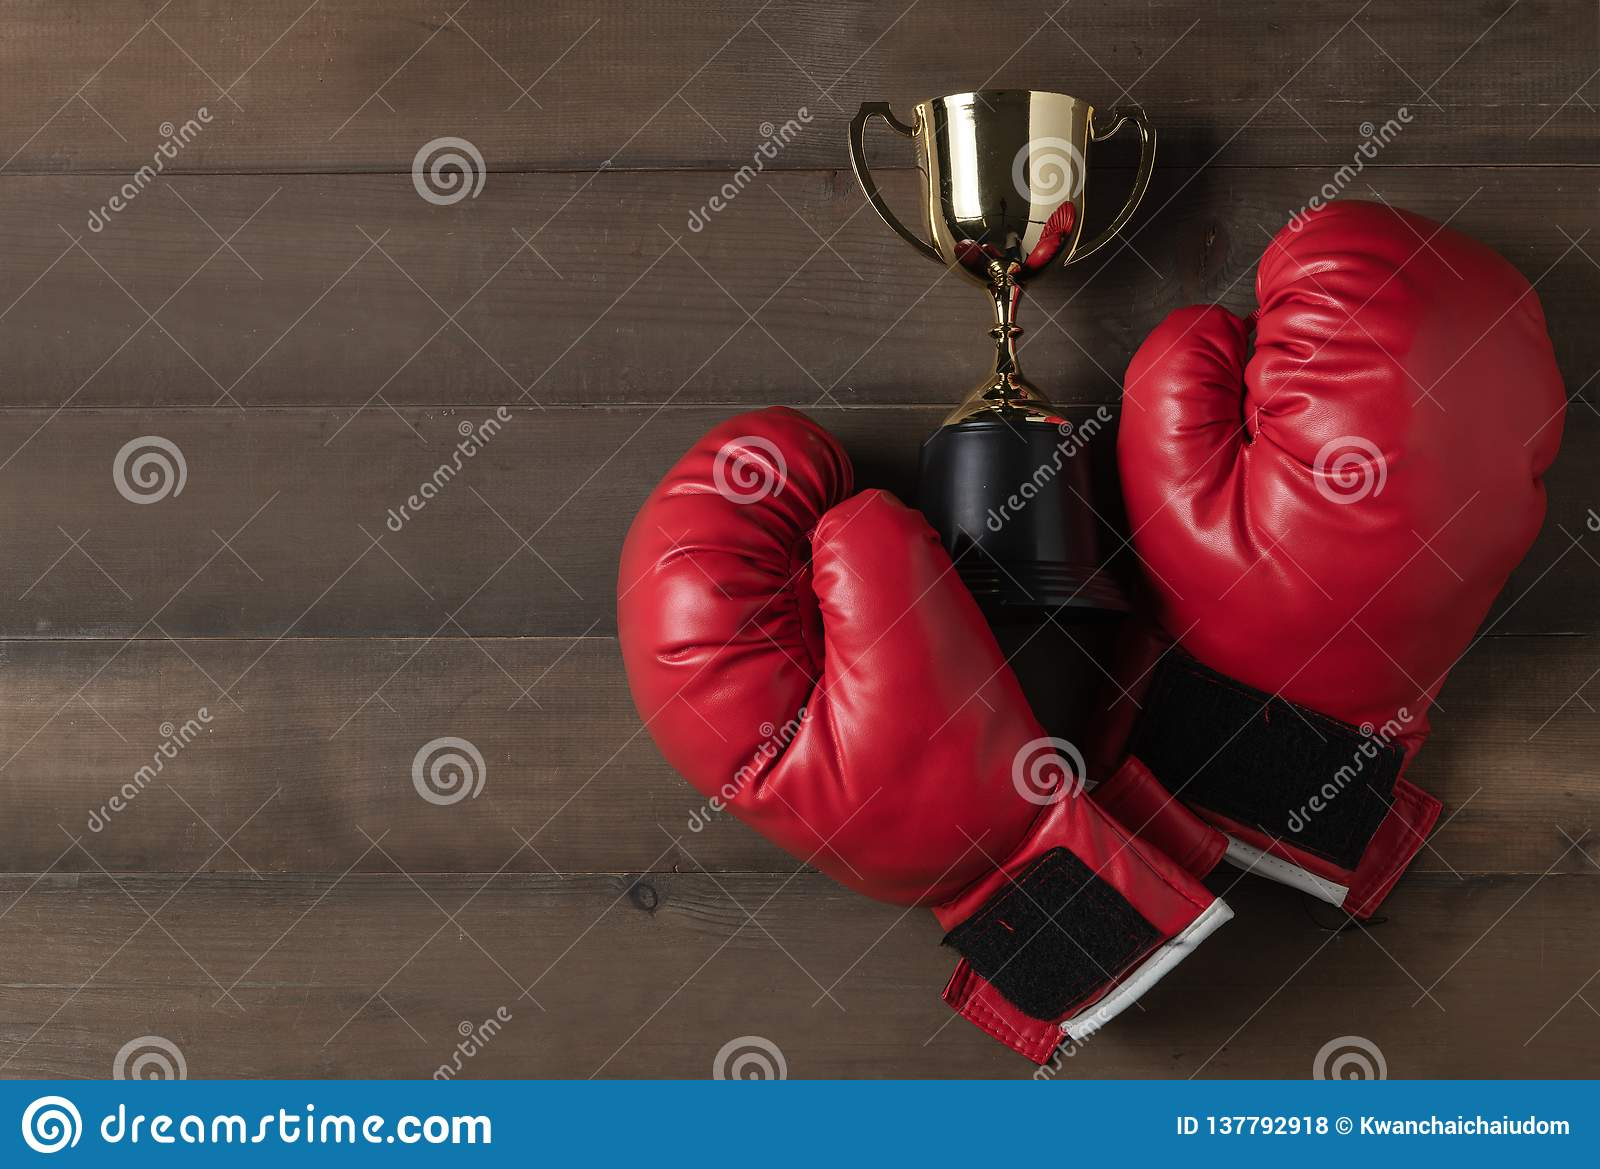 Red boxing glove and trophy on wood bcakground